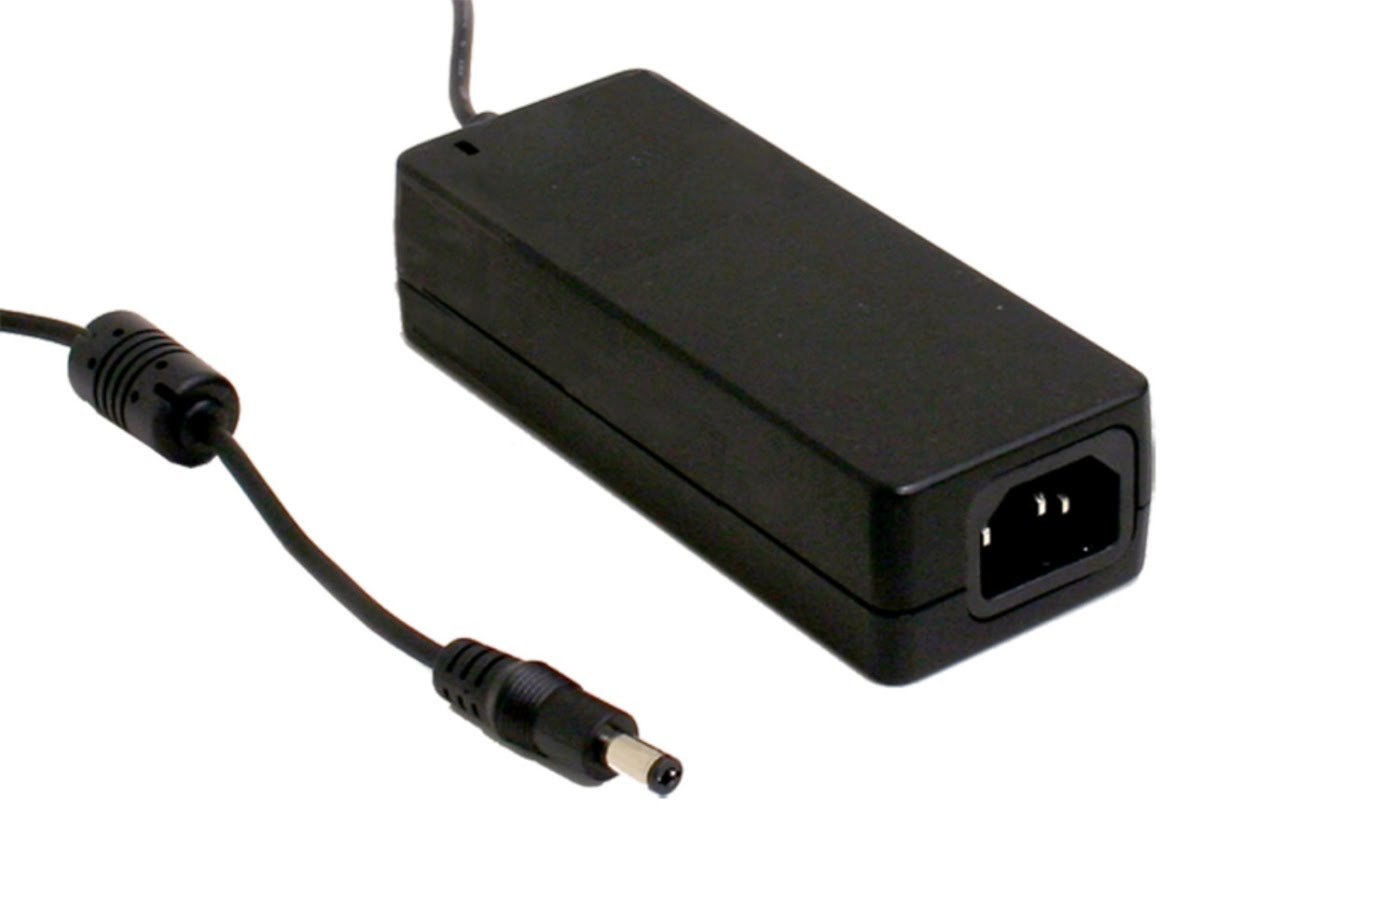 GST60A12-P1J Desktop AC Adapters 60W 12V 5A Level VI 2.1x5.5plug, Pack of 2